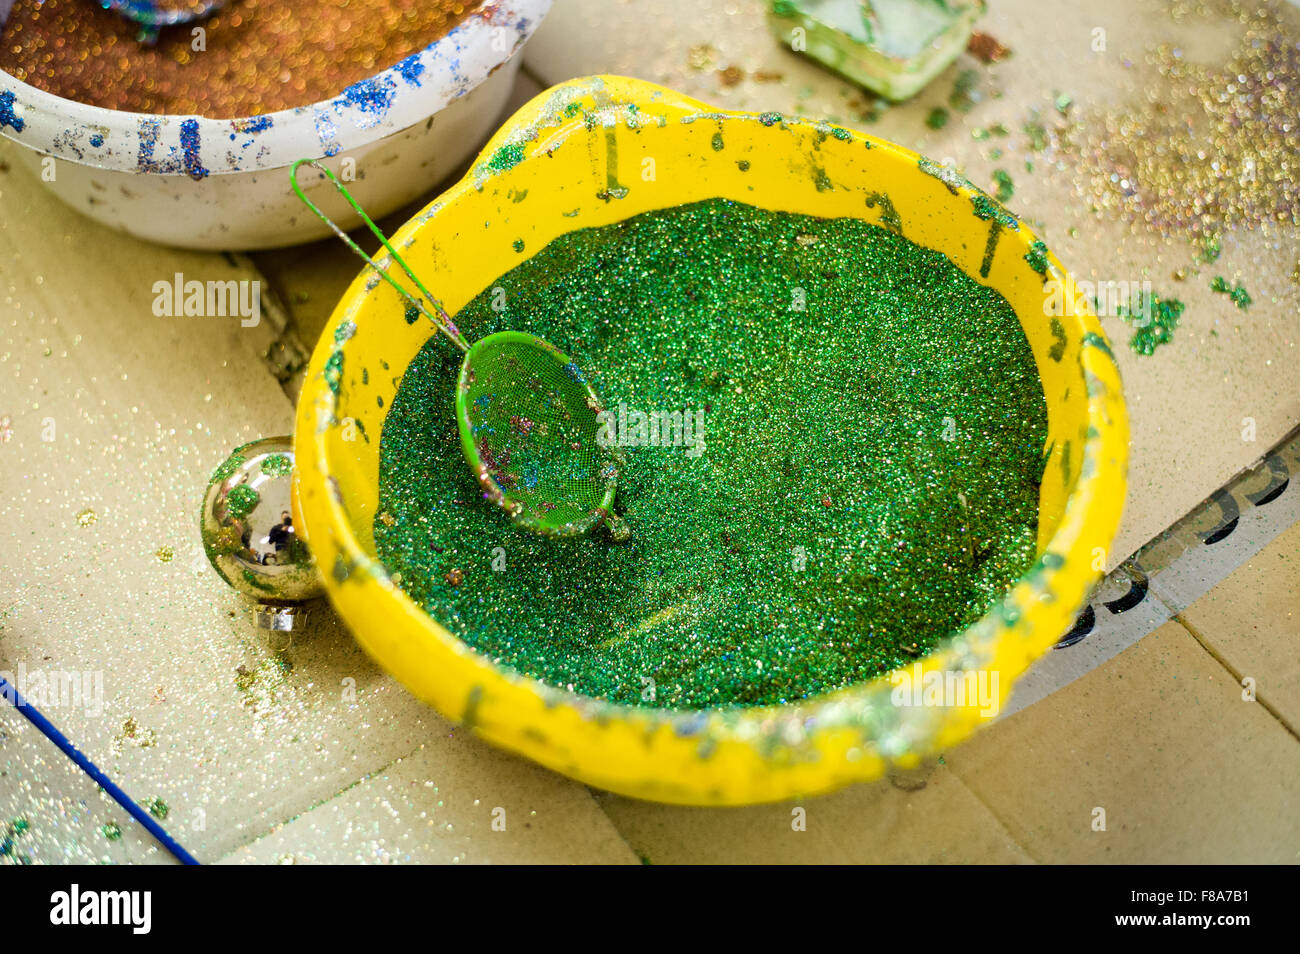 Piotrkow Trybunalski, Poland. 7th December, 2015. Yellow plastic bowl filled with green glitter used to ornament - Stock Image